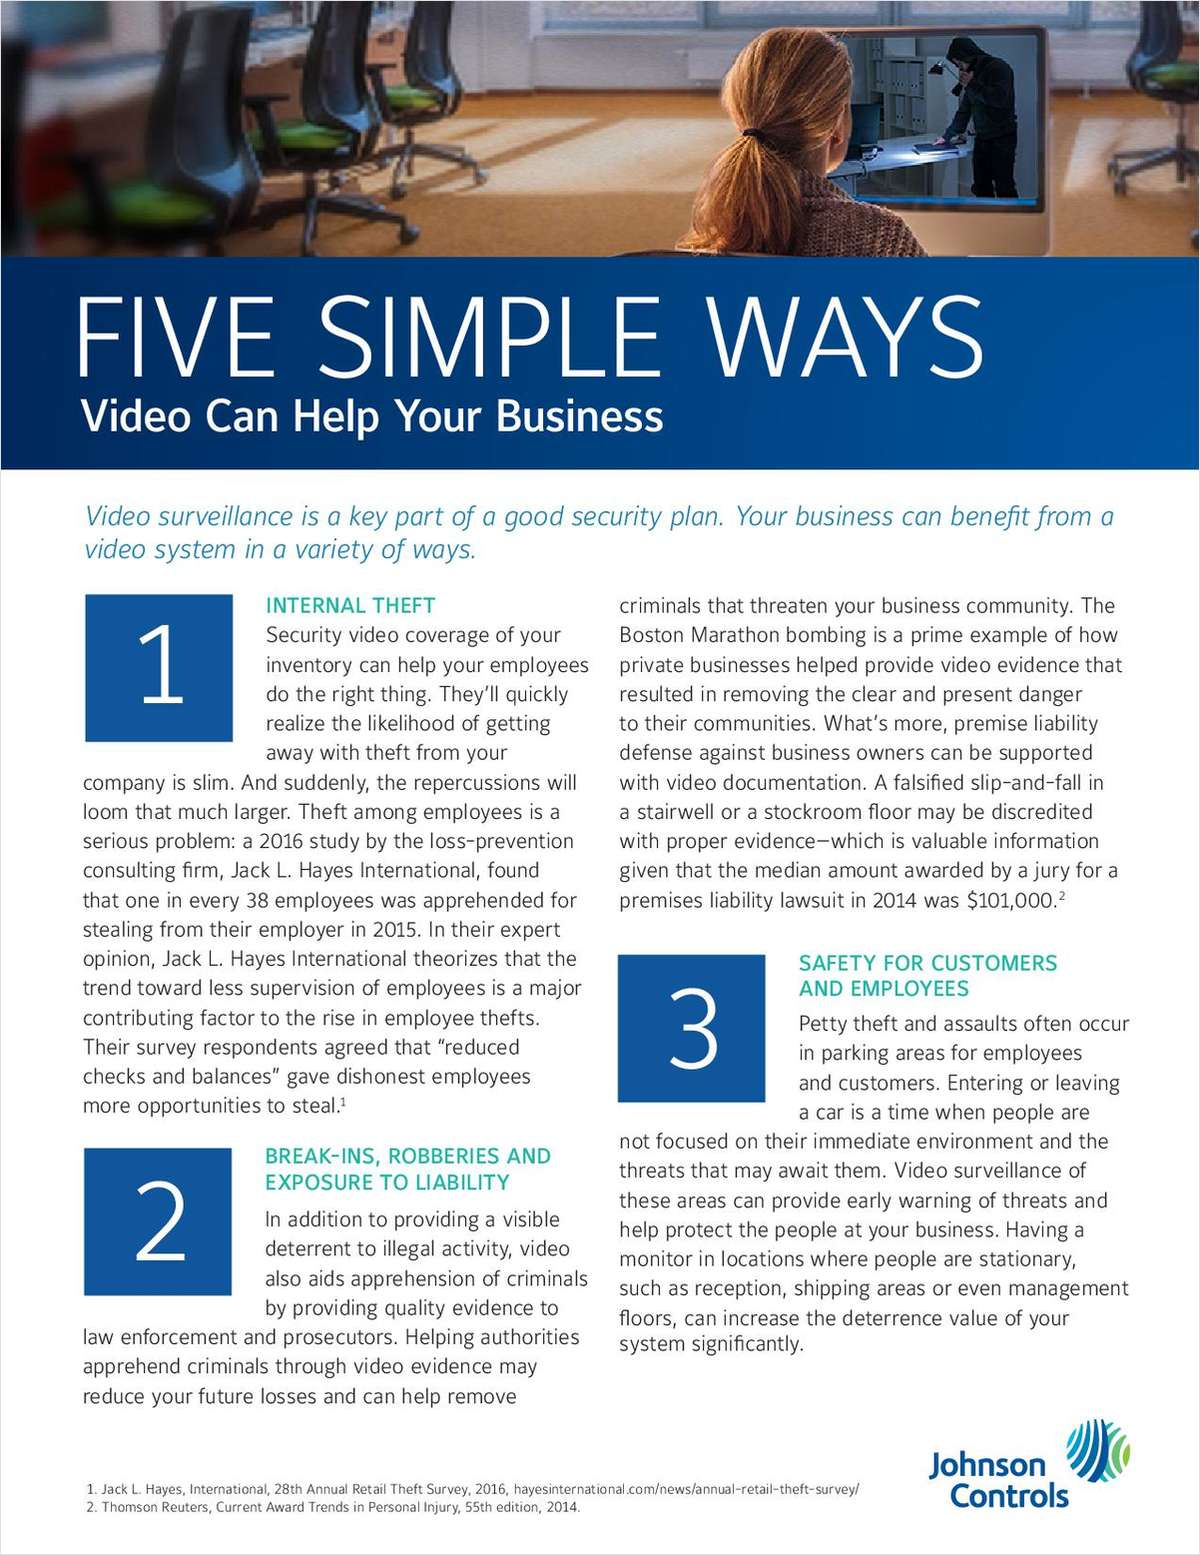 See How Video Can Help Your Business